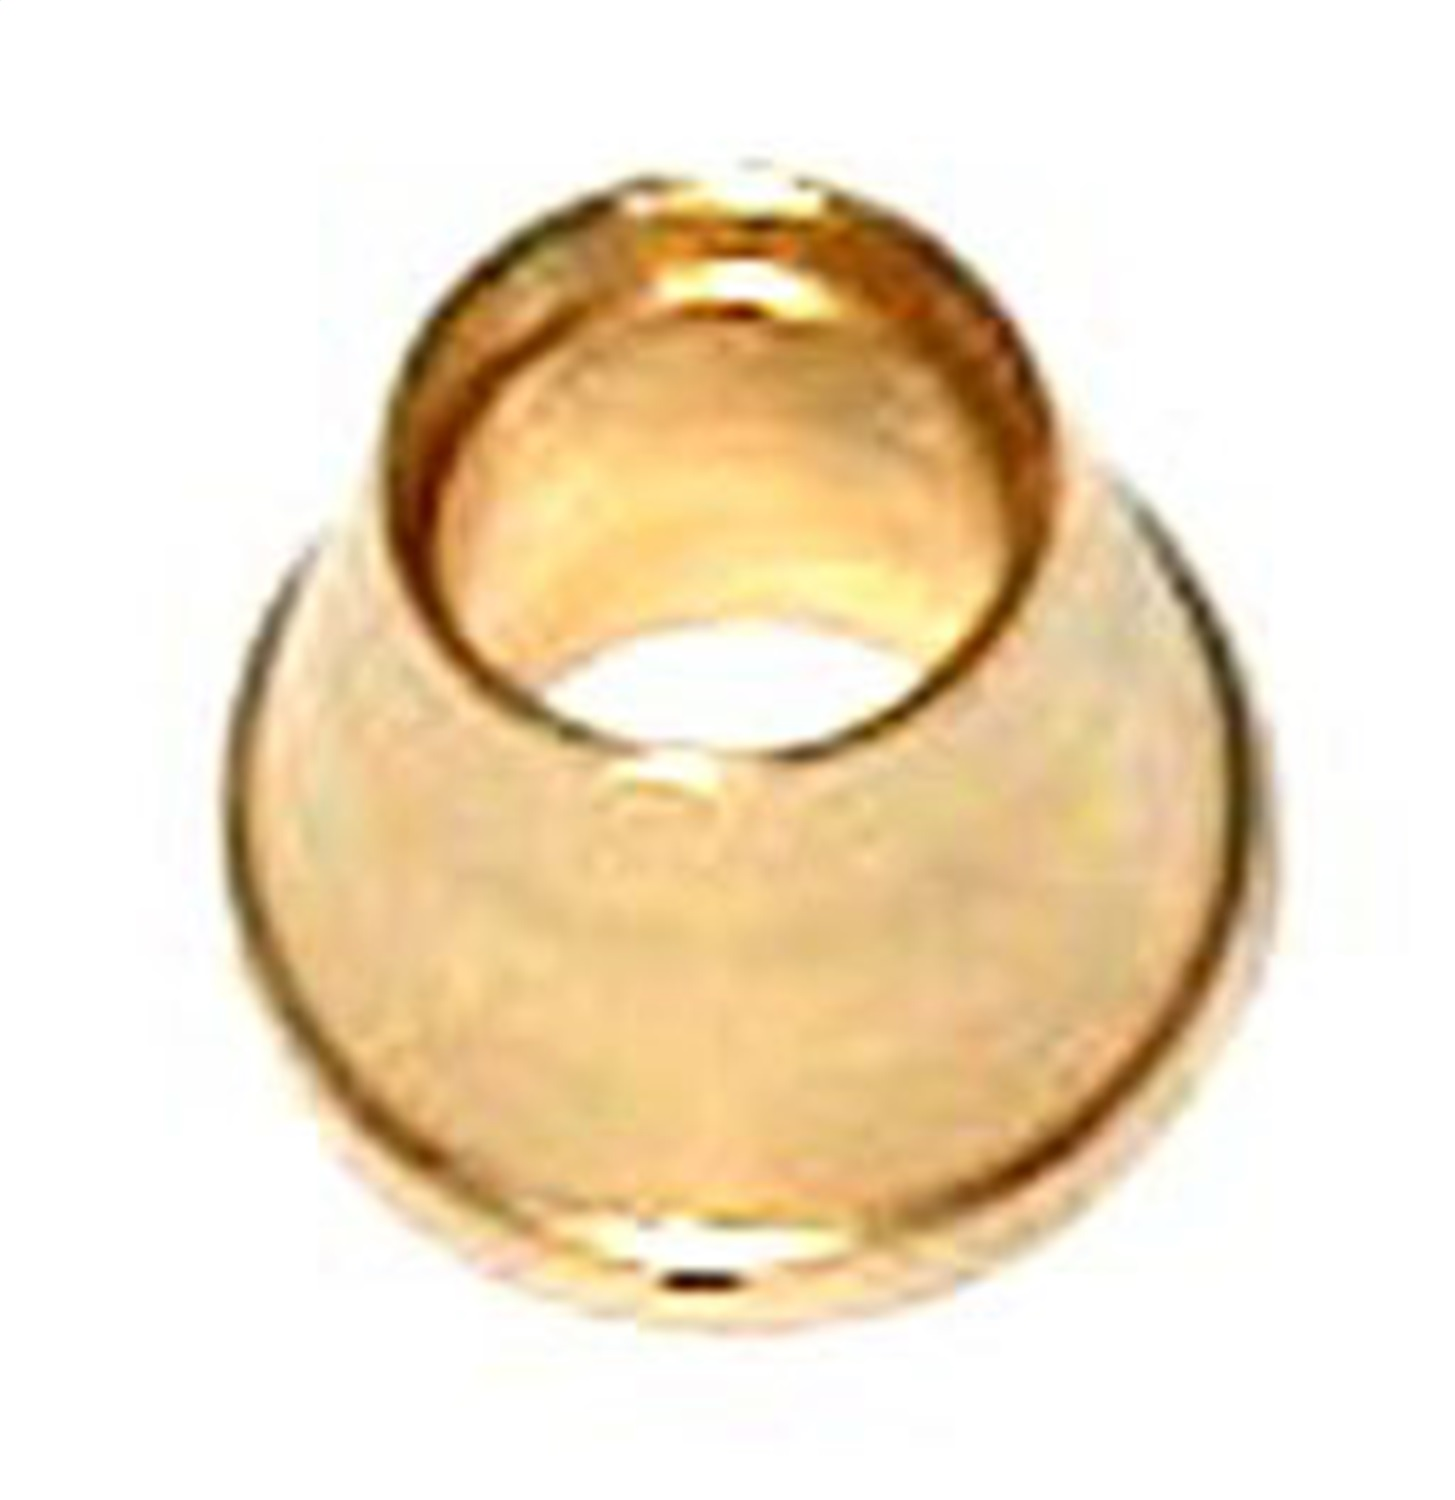 NOS 16404-8NOS Pipe Fitting Compression